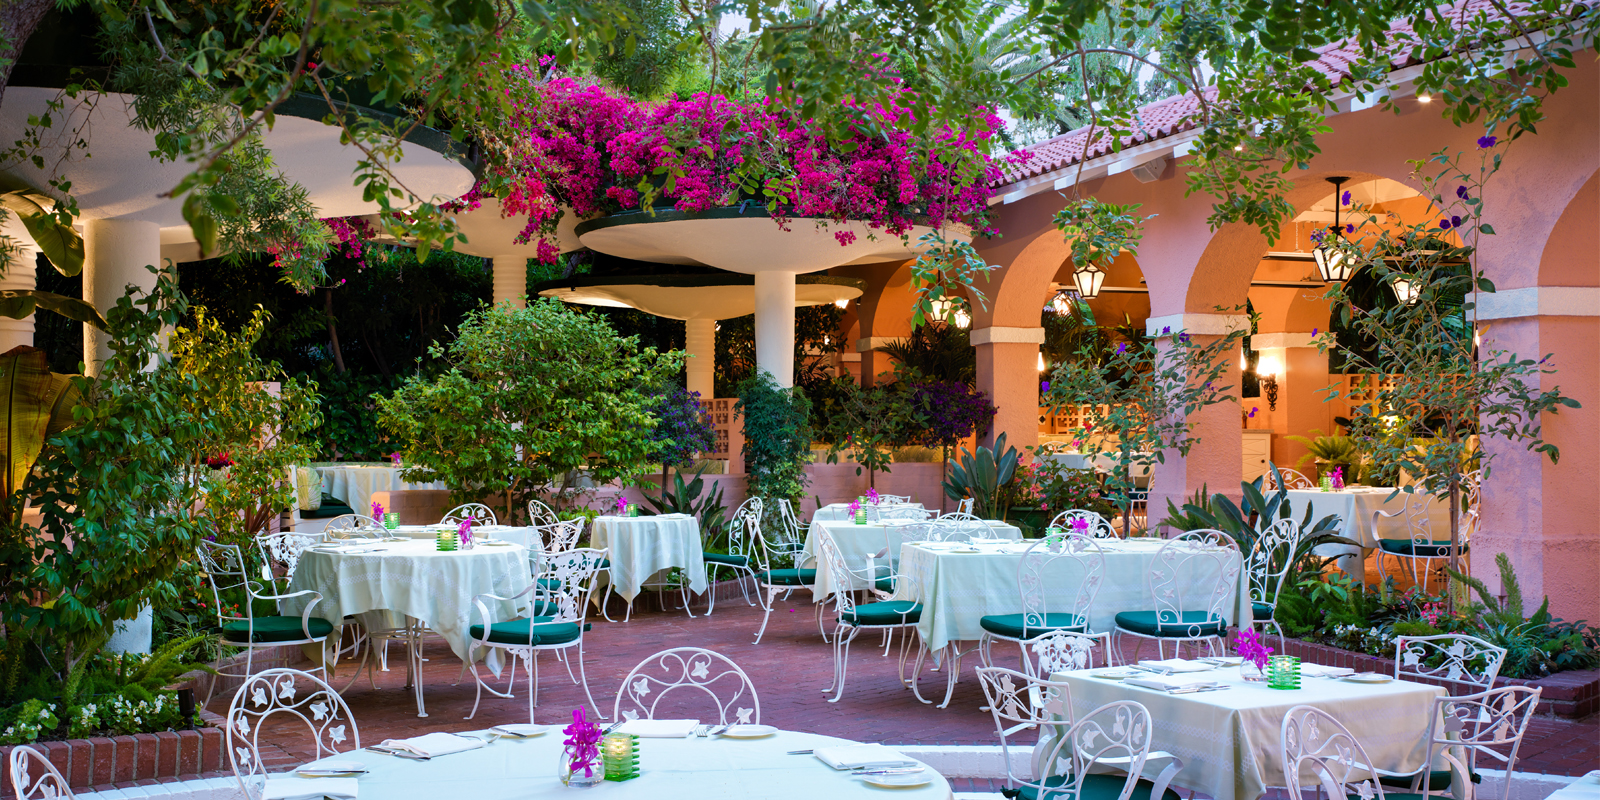 Polo Private Lounge & Patio - The Beverly Hills Hotel